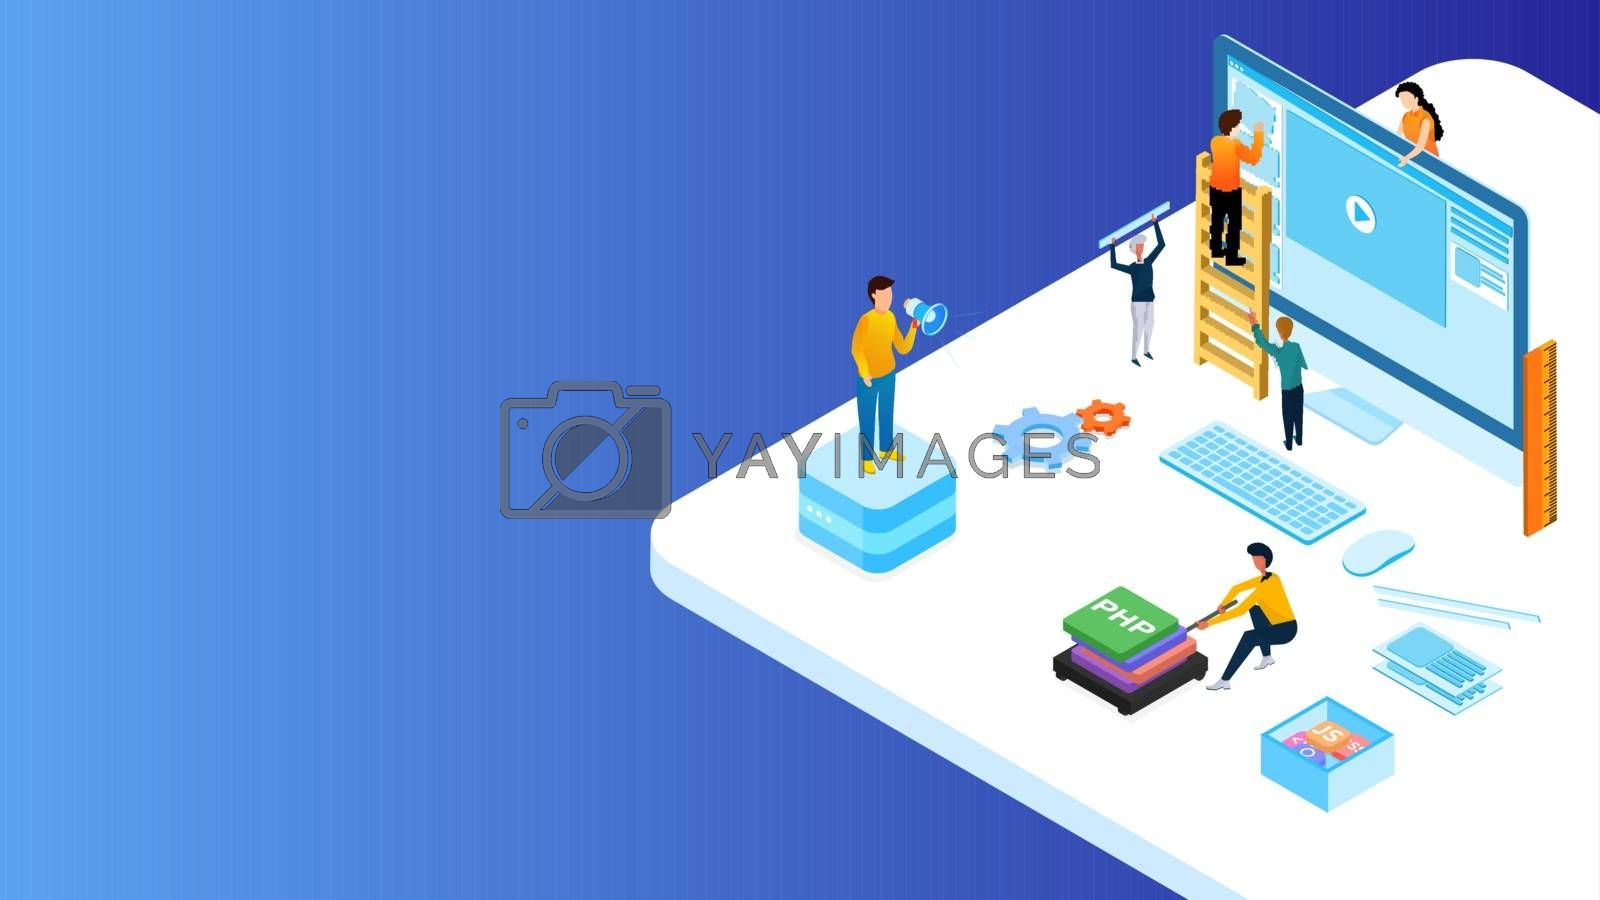 Miniature web developers maintain the website on computer with different programming language sign for Web Development or advertising concept based isometric design.